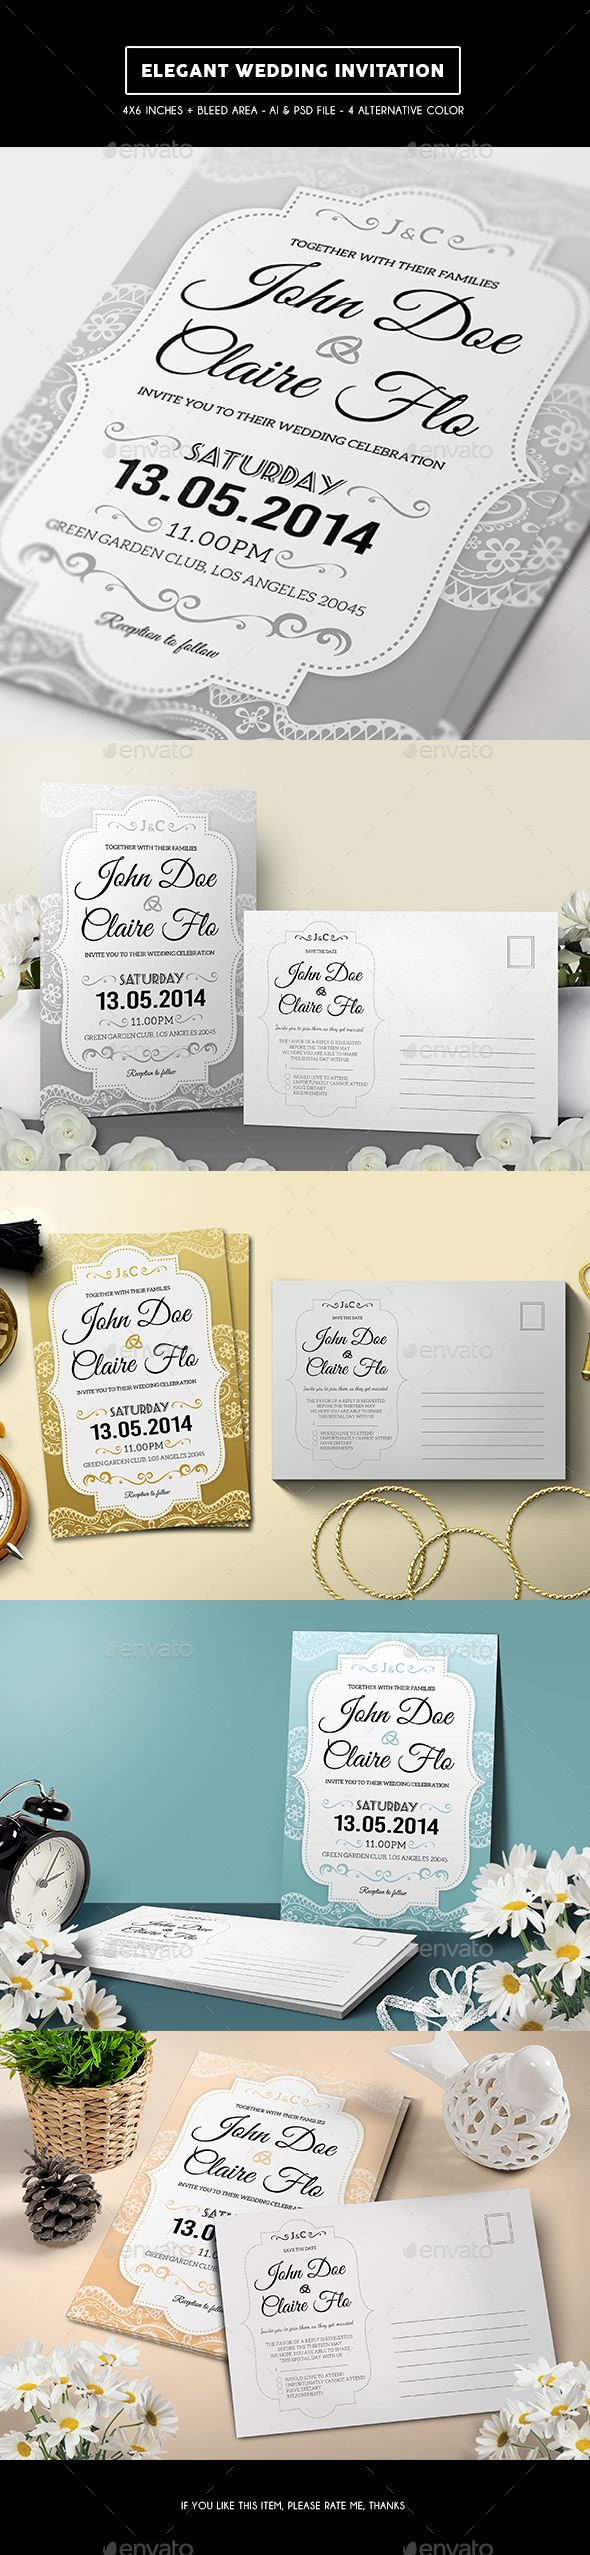 card invitation template design wedding invitation software Elegant Wedding Invitation